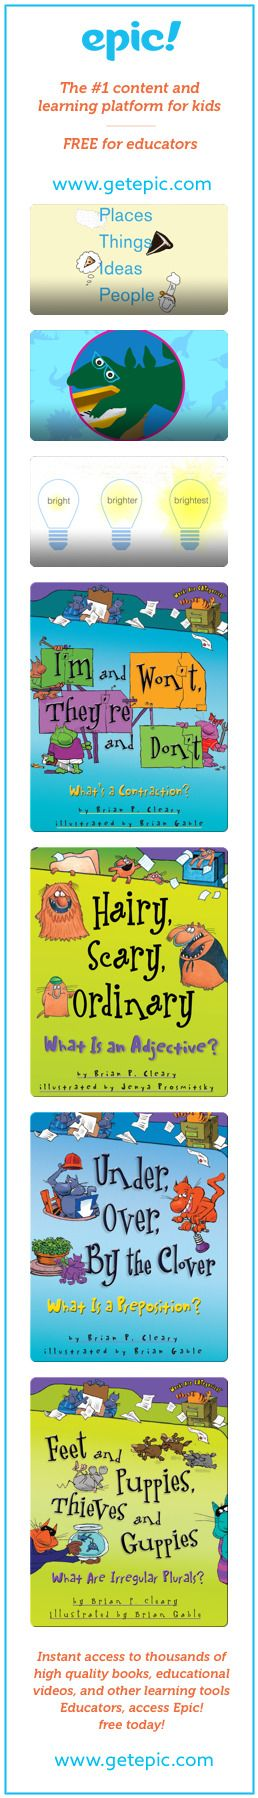 Parts of Speech - Titles in this collection: Nouns, Verbs, Adjectives, I'm and Won't, They're and Don't: What's a Contraction?, Hairy, Scary, Ordinary: What is an Adjective?, Under, Over, By the Clover: What is a Preposition?, Feet and Puppies, Thieves and Guppies, But and For, Yet and Nor: What is a Conjunction?, Th